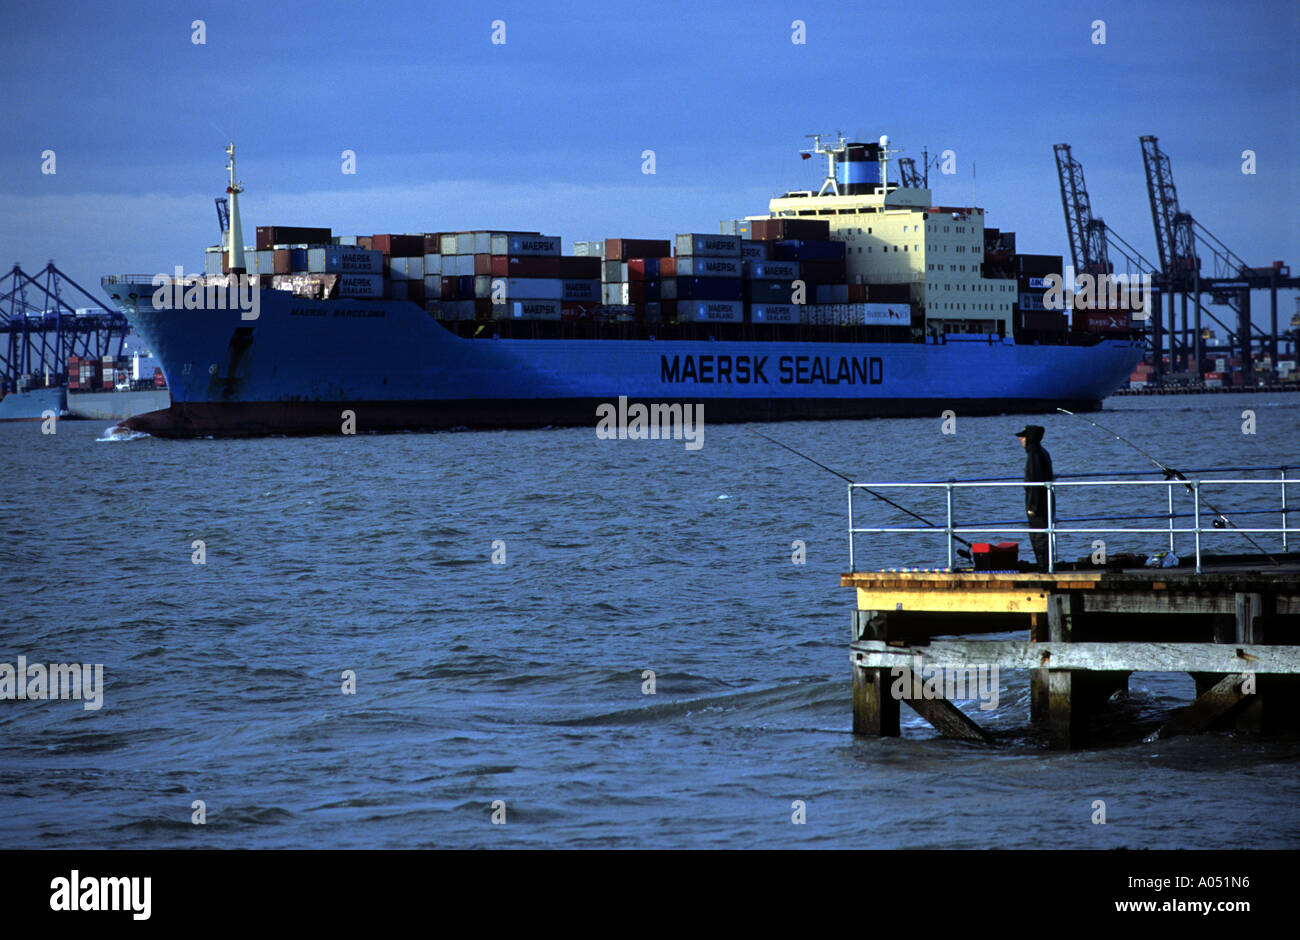 Maersk Sealand container ship leaving the port of Felixstowe in Suffolk, UK. - Stock Image